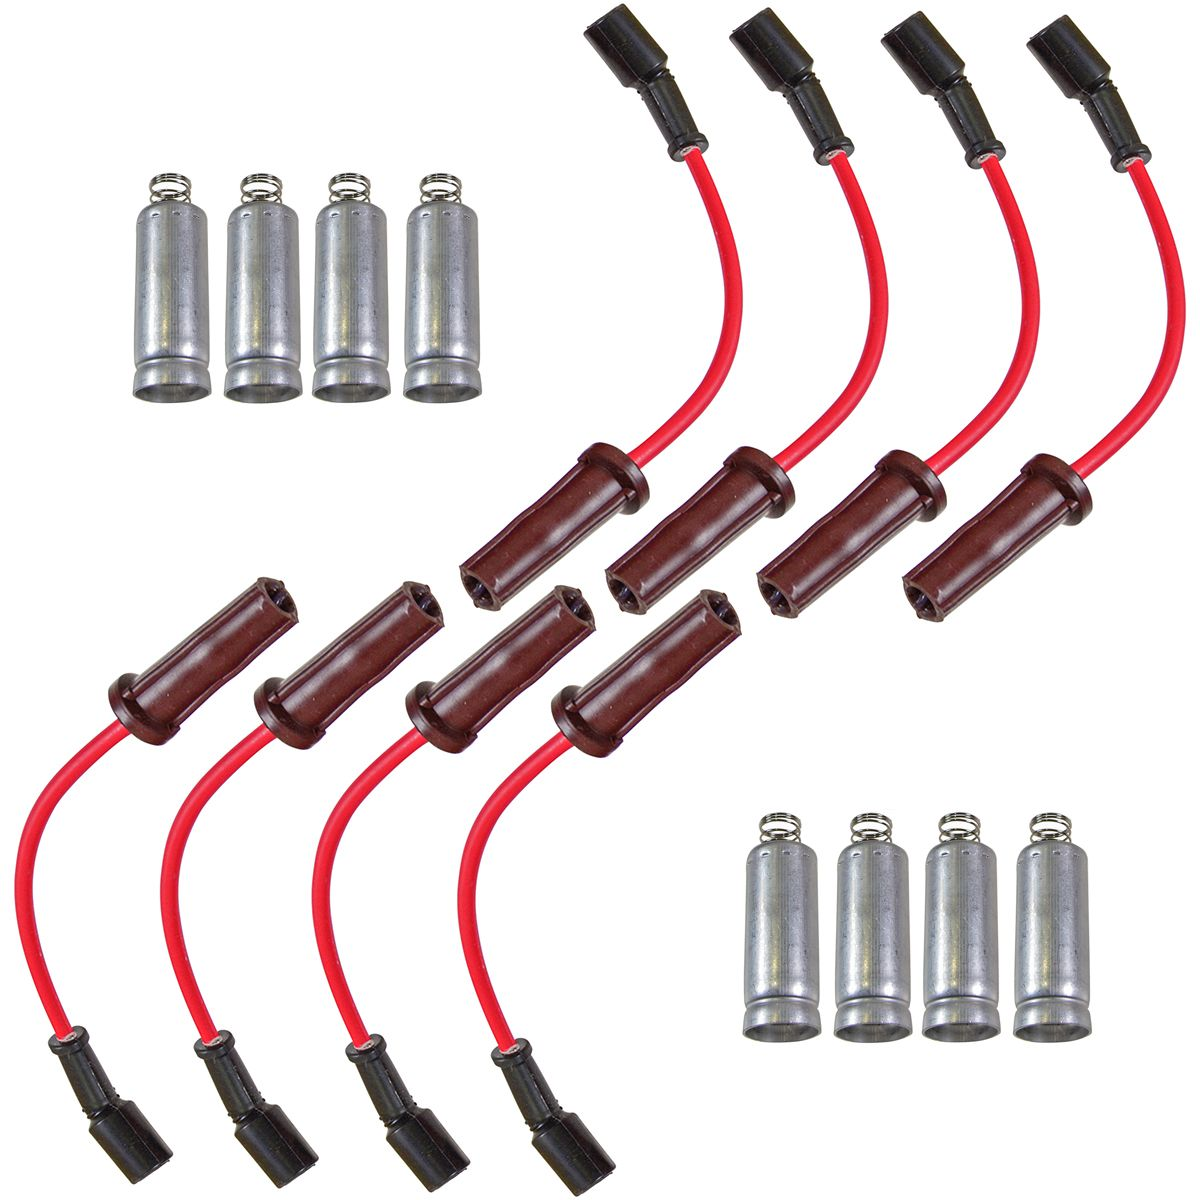 Spark Plug Ignition Wire Set for Buick Cadillac Chevy Hummer Isuzu w/Squire Coil